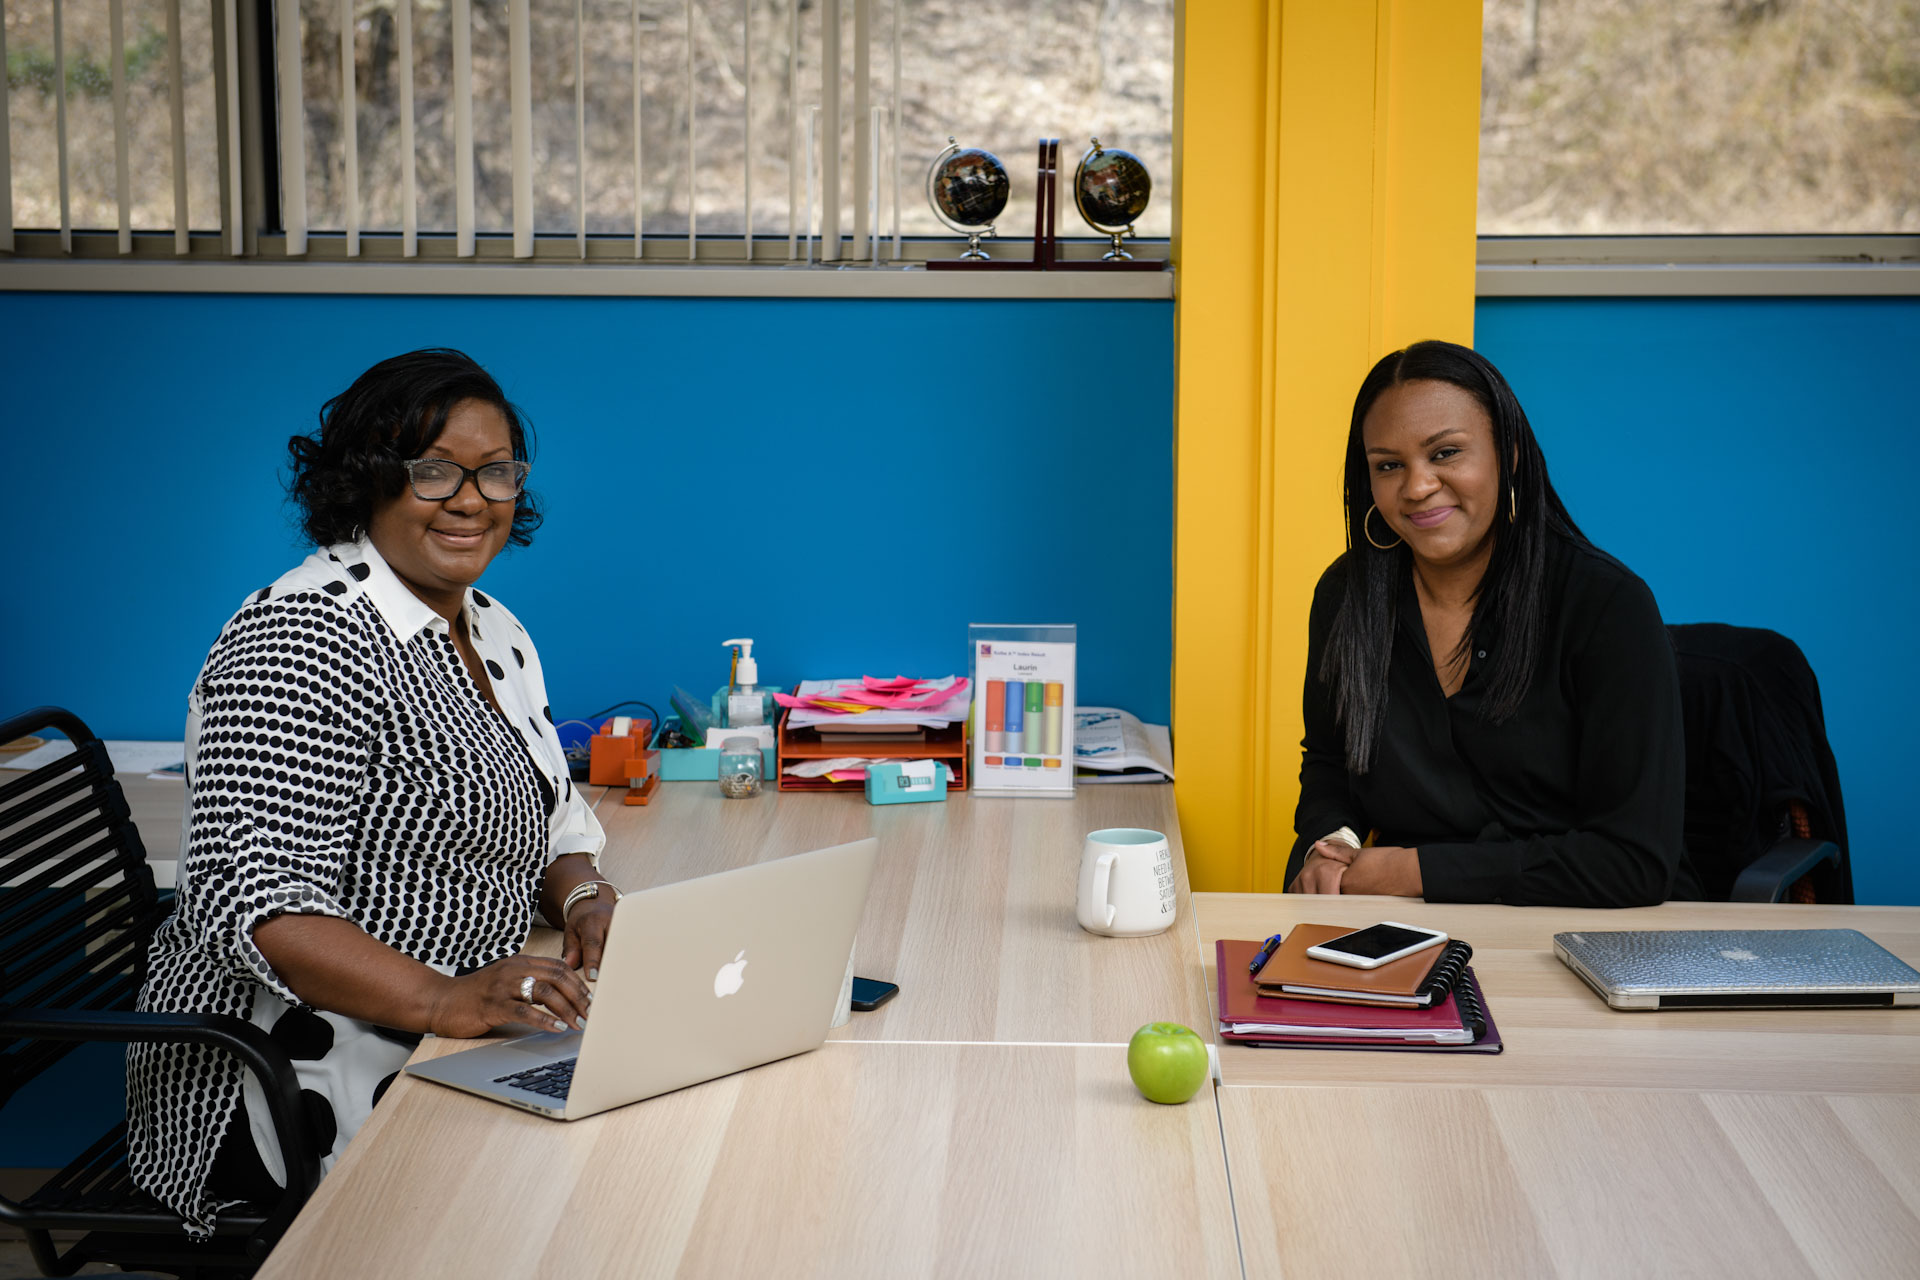 Black female entrepreneurs working at desks